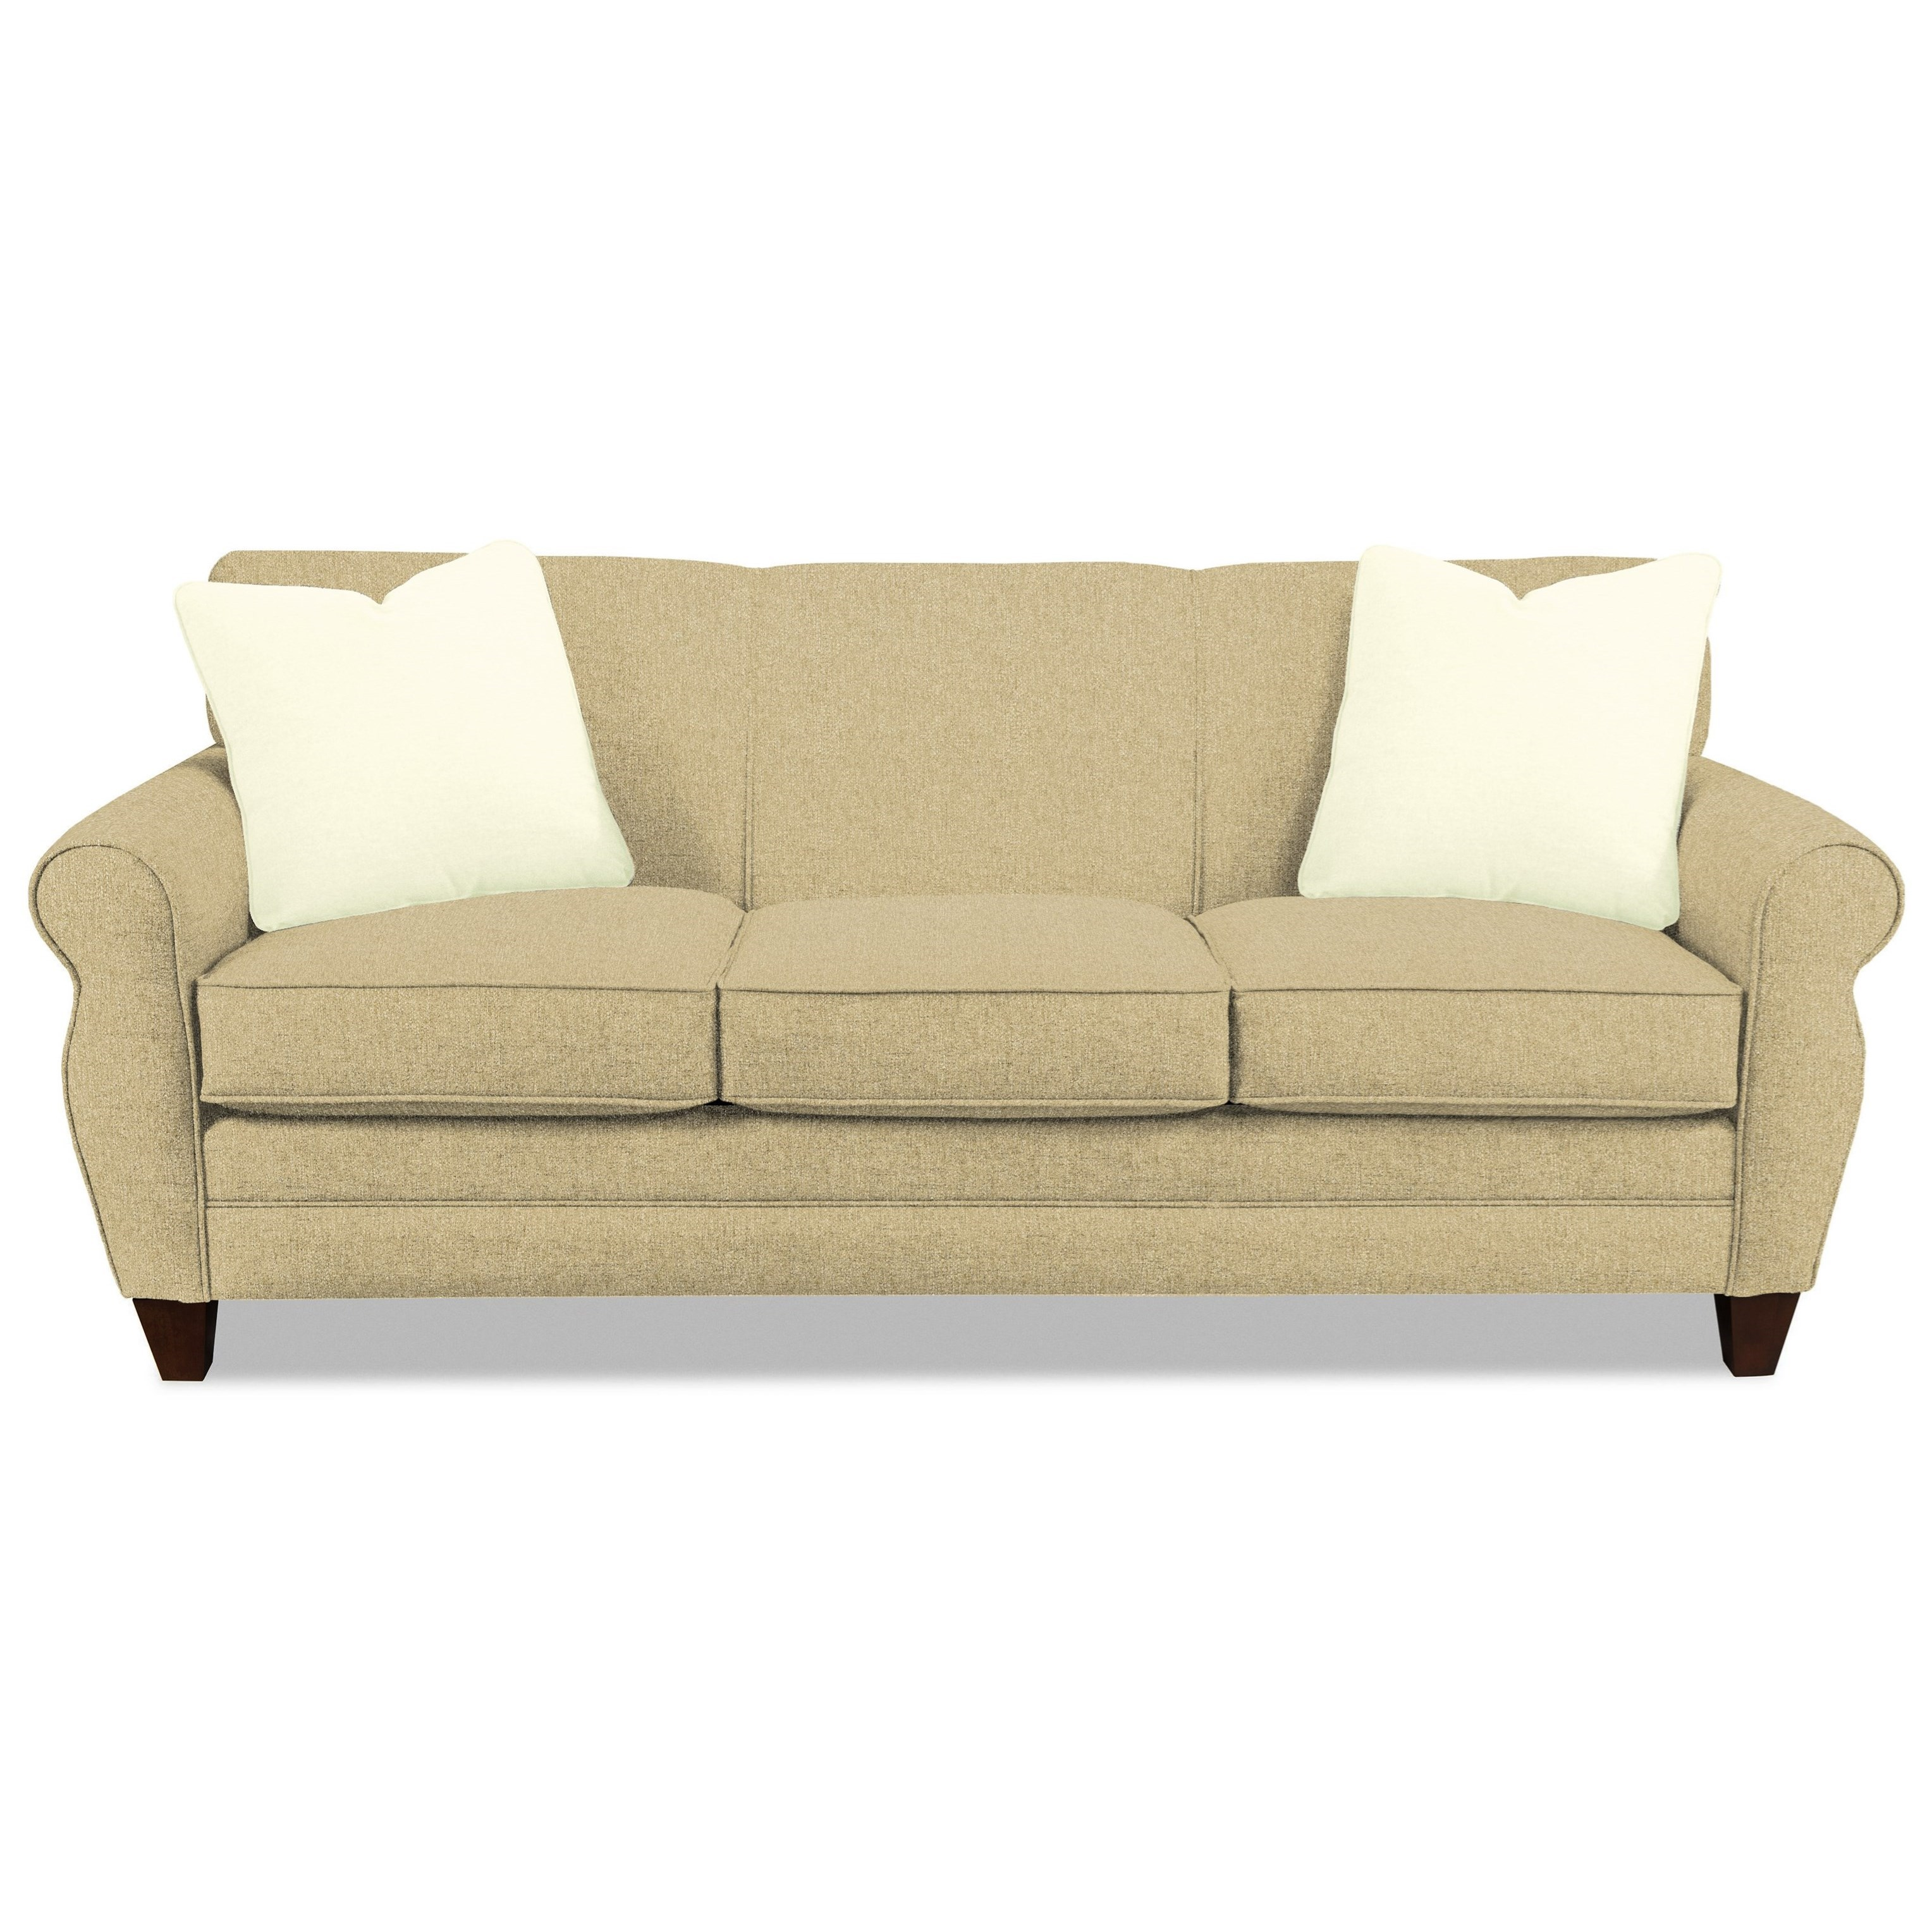 7388 Sofa by Hickory Craft at Godby Home Furnishings